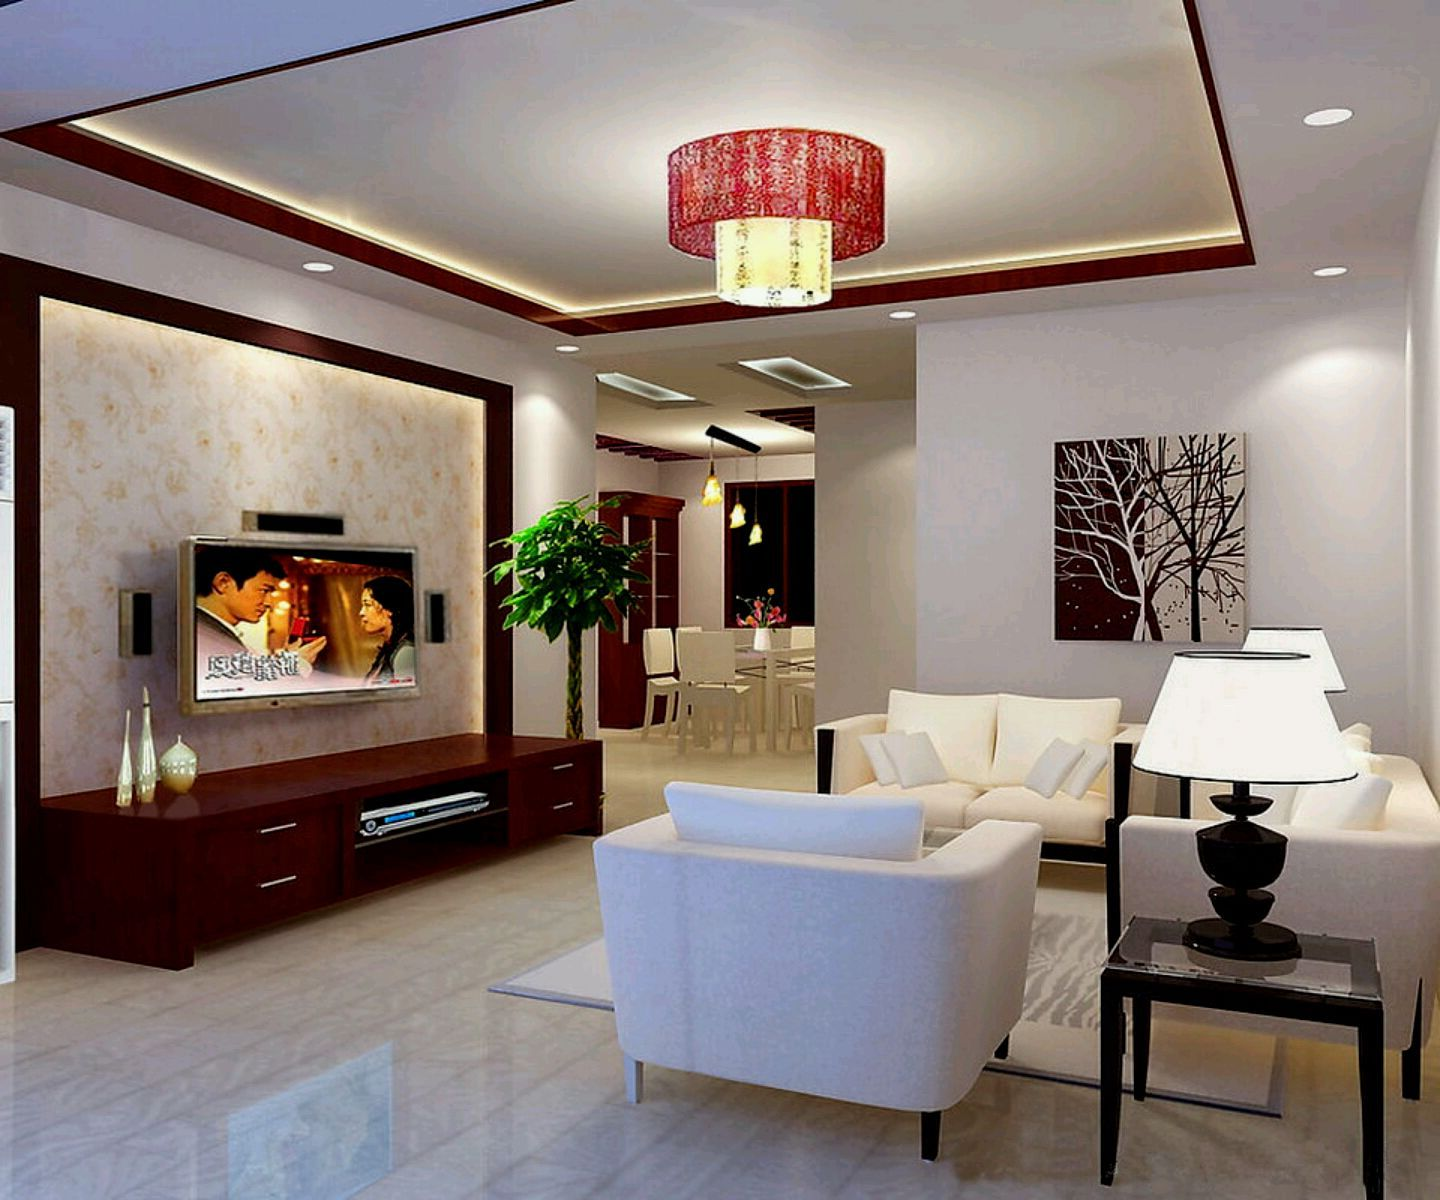 Design Ideas For Kitchen Bathroom Living Room: Kitchen Ceiling Design, Hall Interior Design, Home Decor